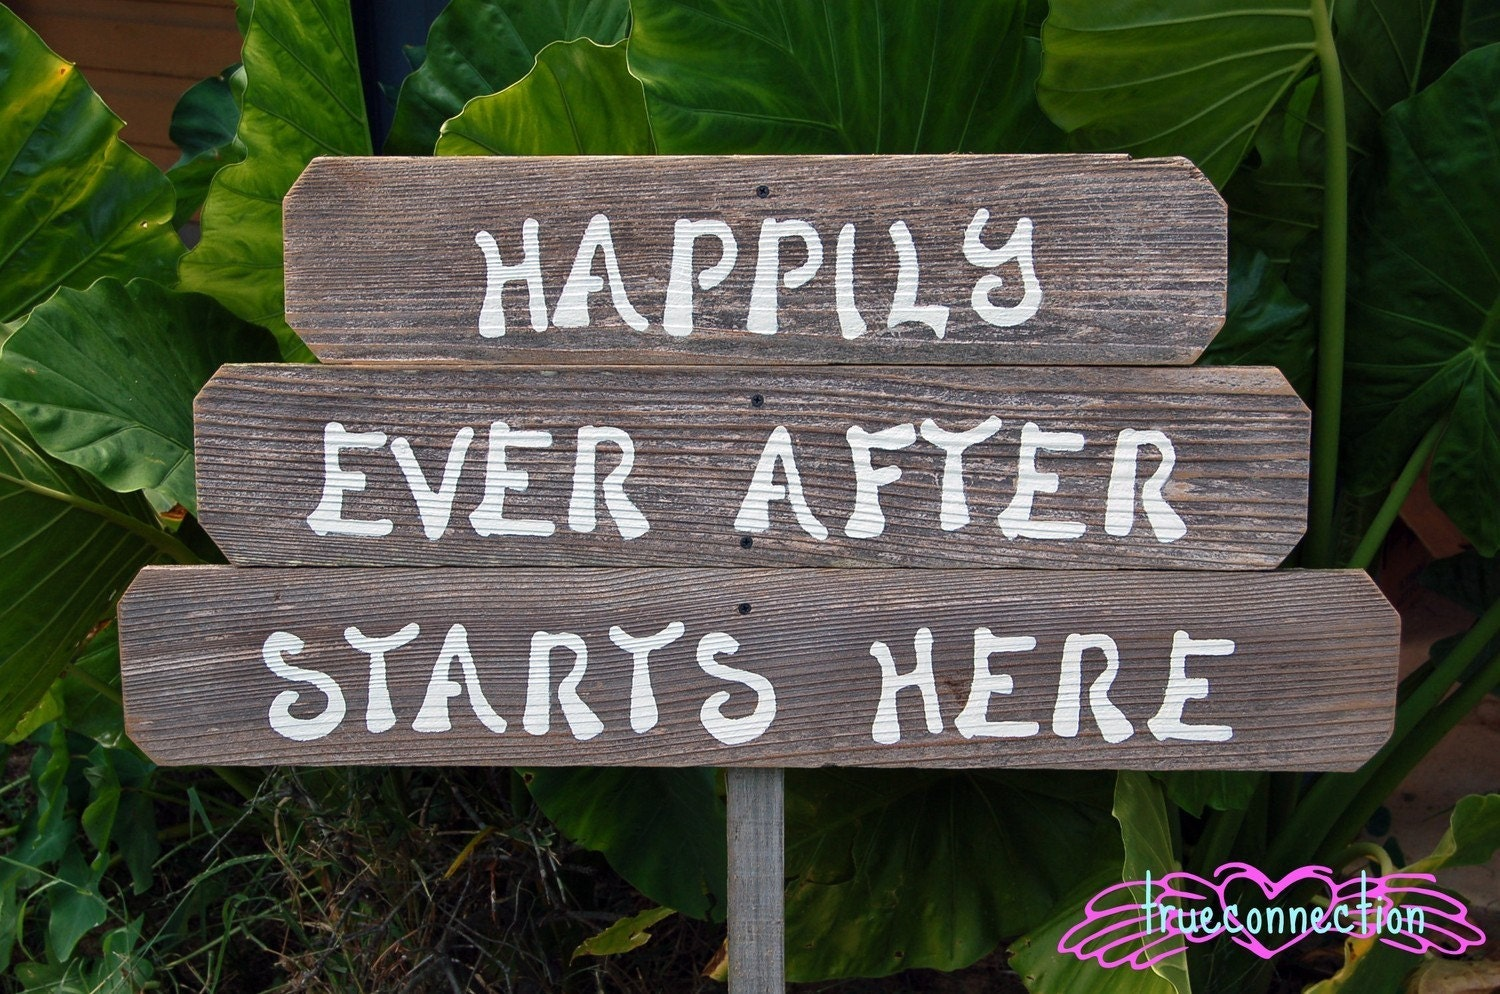 Happily Ever After Starts Here Wood Wedding Signs Rustic